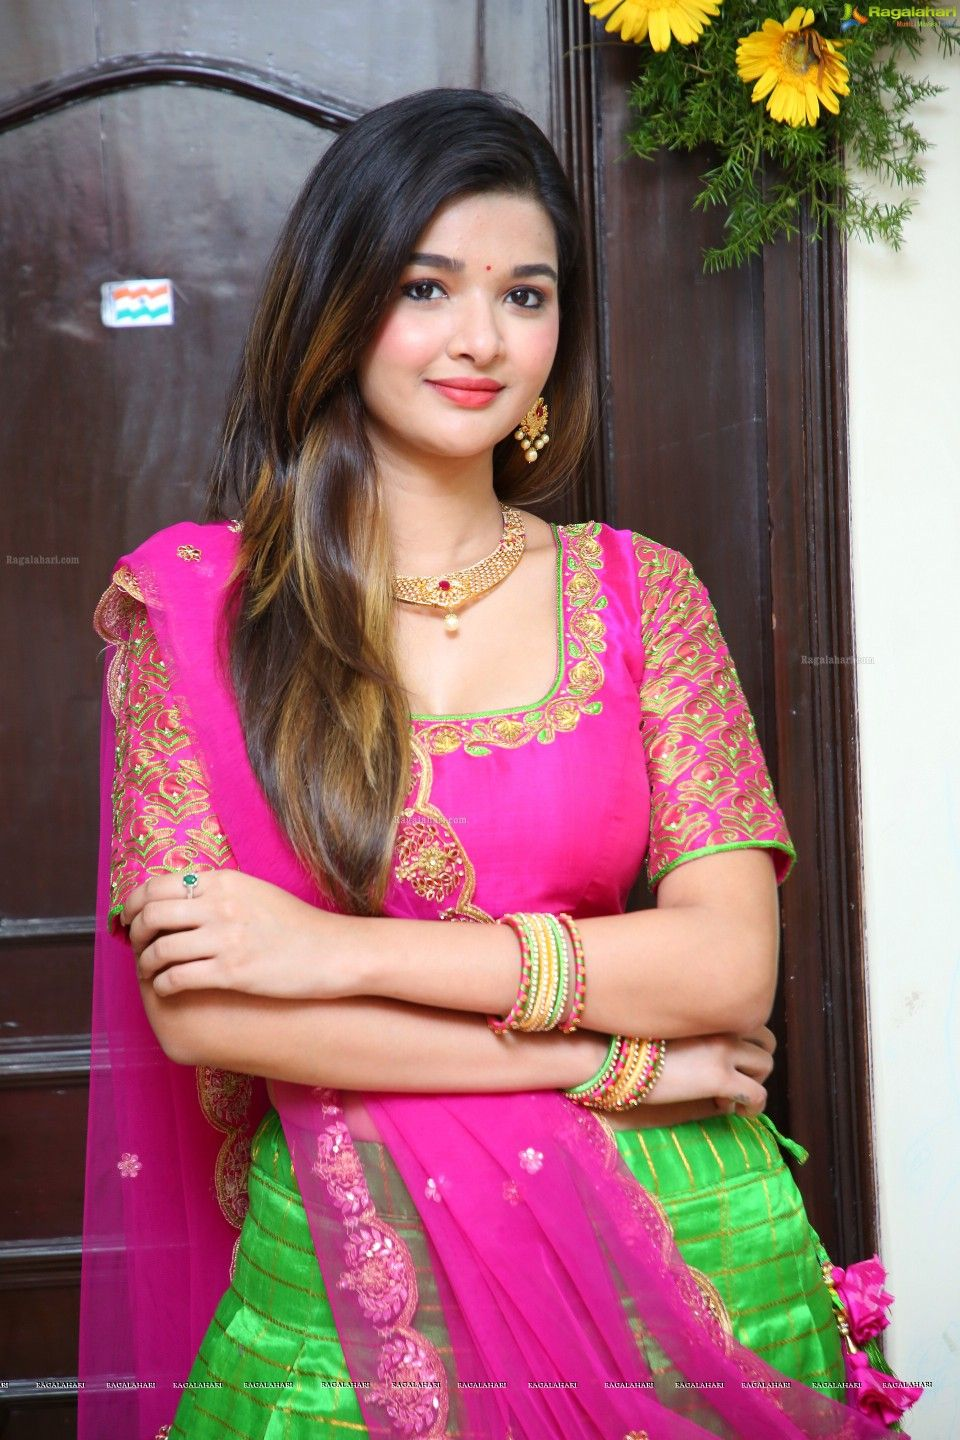 Good looking girls indian